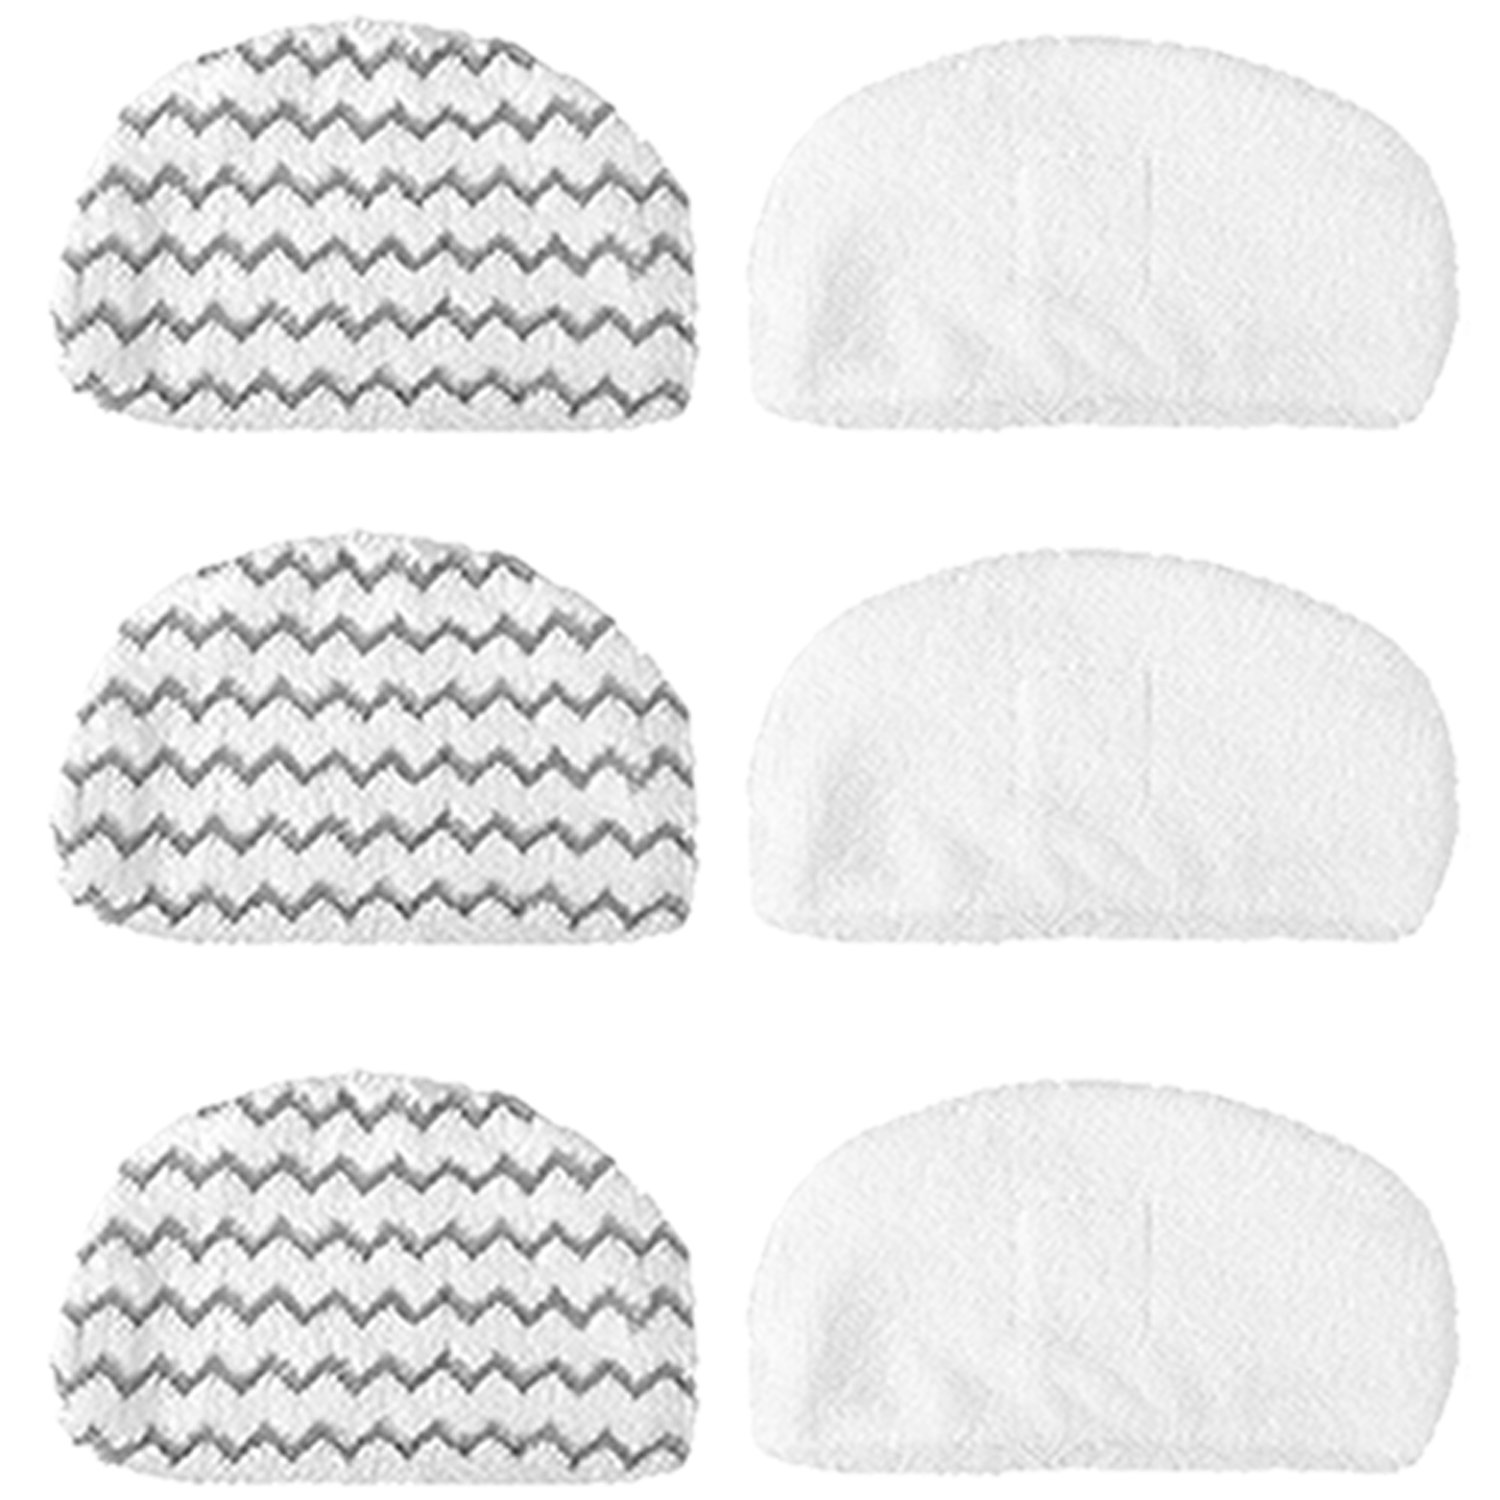 Amyehouse 6 Pcs Washable Mopping & Scrubbing Pads Replacement for Bissell Powerfresh 1940 1440 1544 Series Steam Mop, Model 1544A, 2075A, 1440, 1940W, 19404, 1806, 1940A, 5938, 19408, 1940Q, 1940W